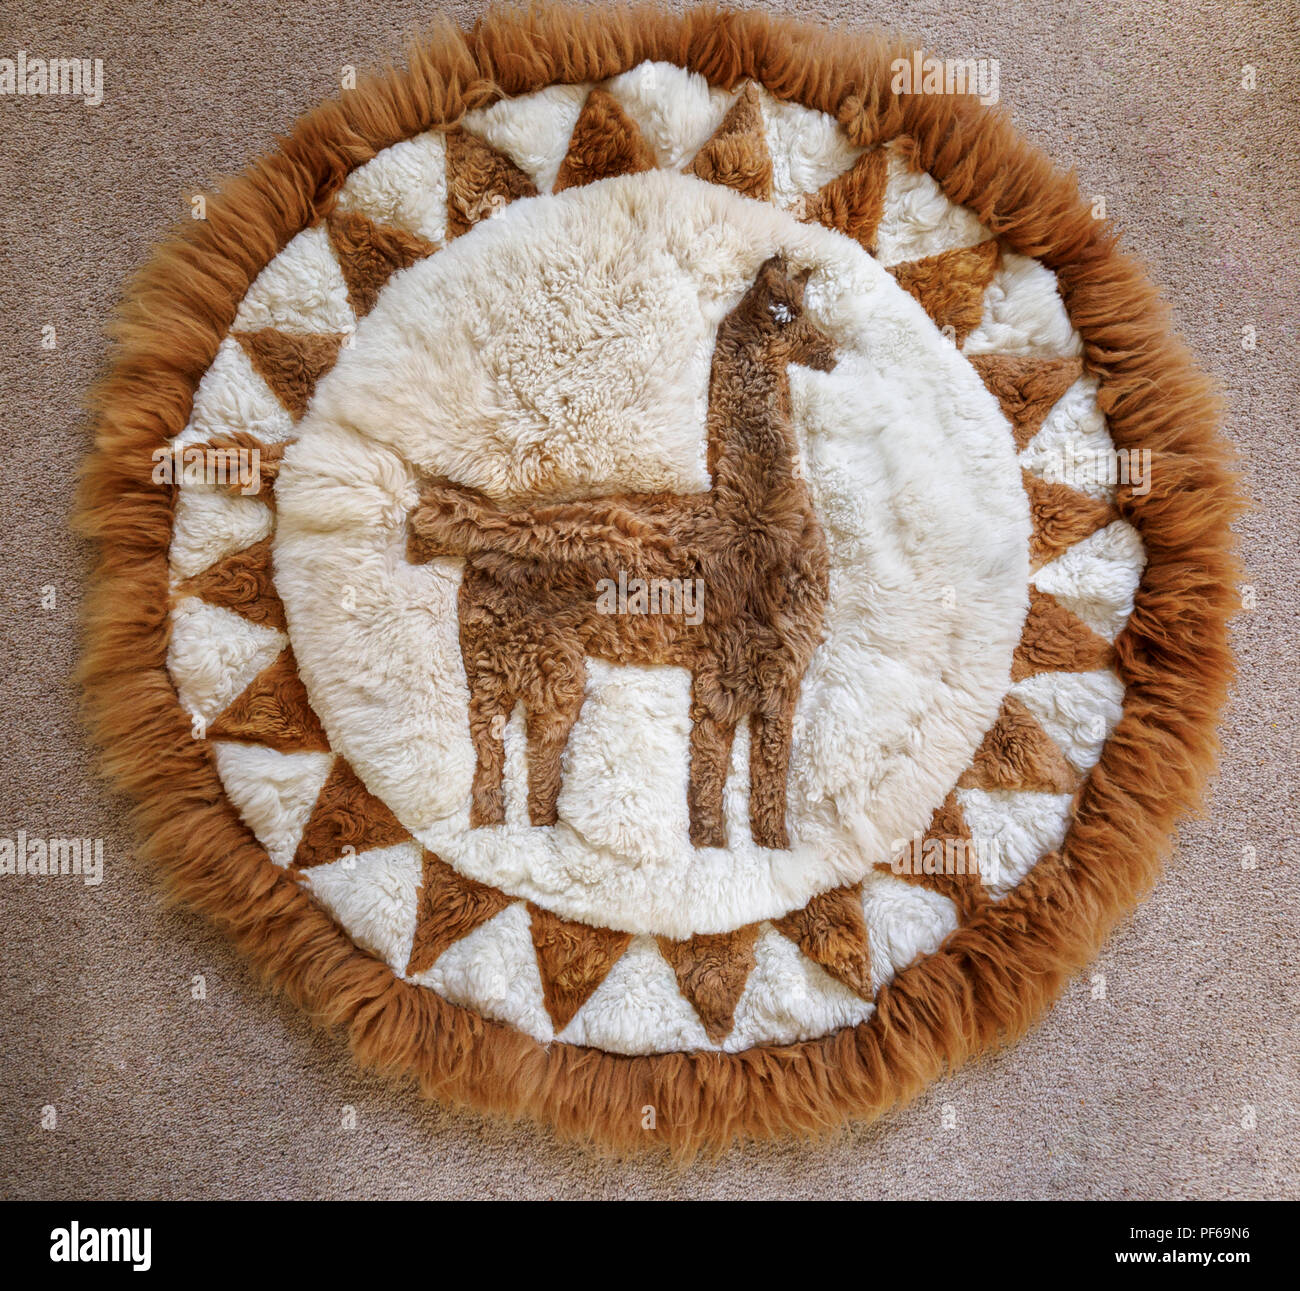 Typical Peruvian or Bolivian souvenir: a soft, fluffy patchwork rug hand crafted from pieces of alpaca skin to form a picture of an alpaca or llama - Stock Image